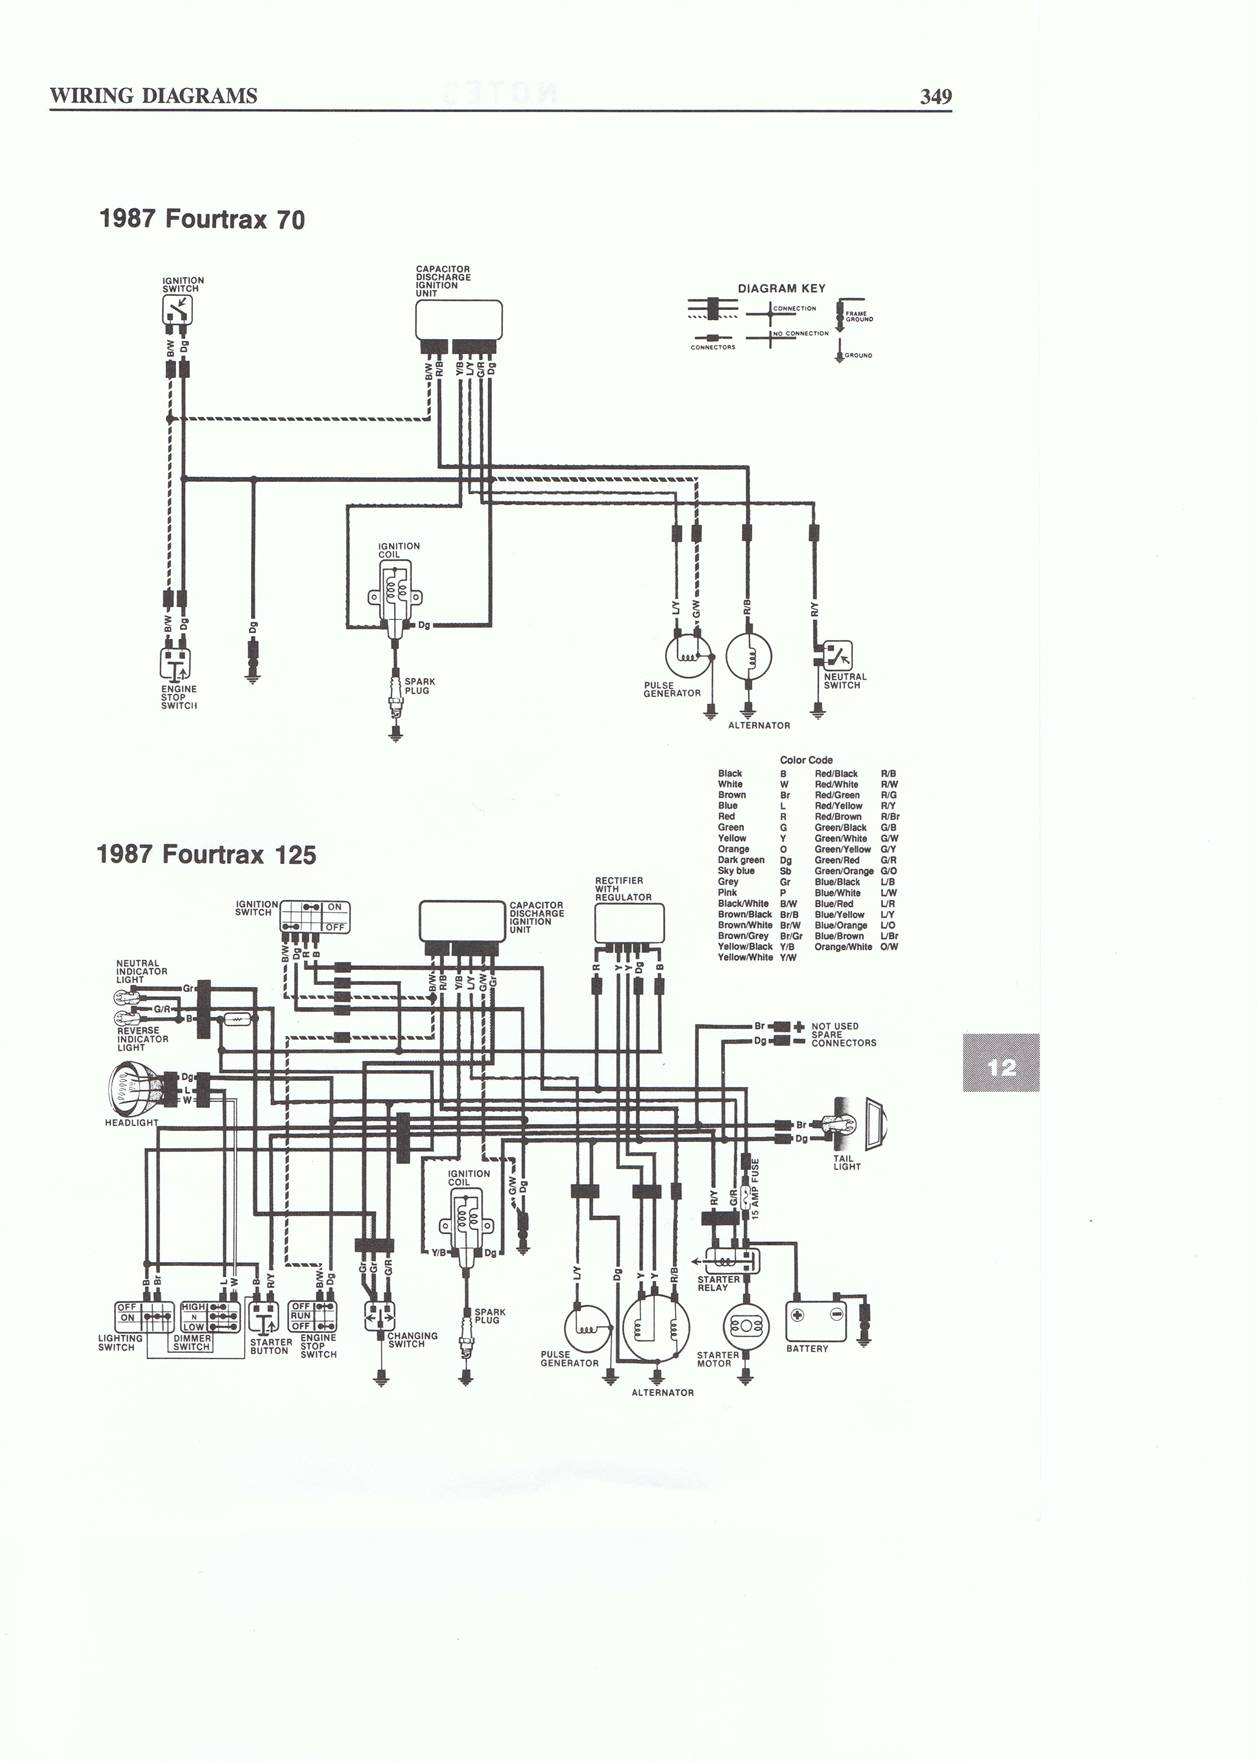 gy6 engine wiring diagram?t=1398725710 gy6 engine wiring diagram  at arjmand.co